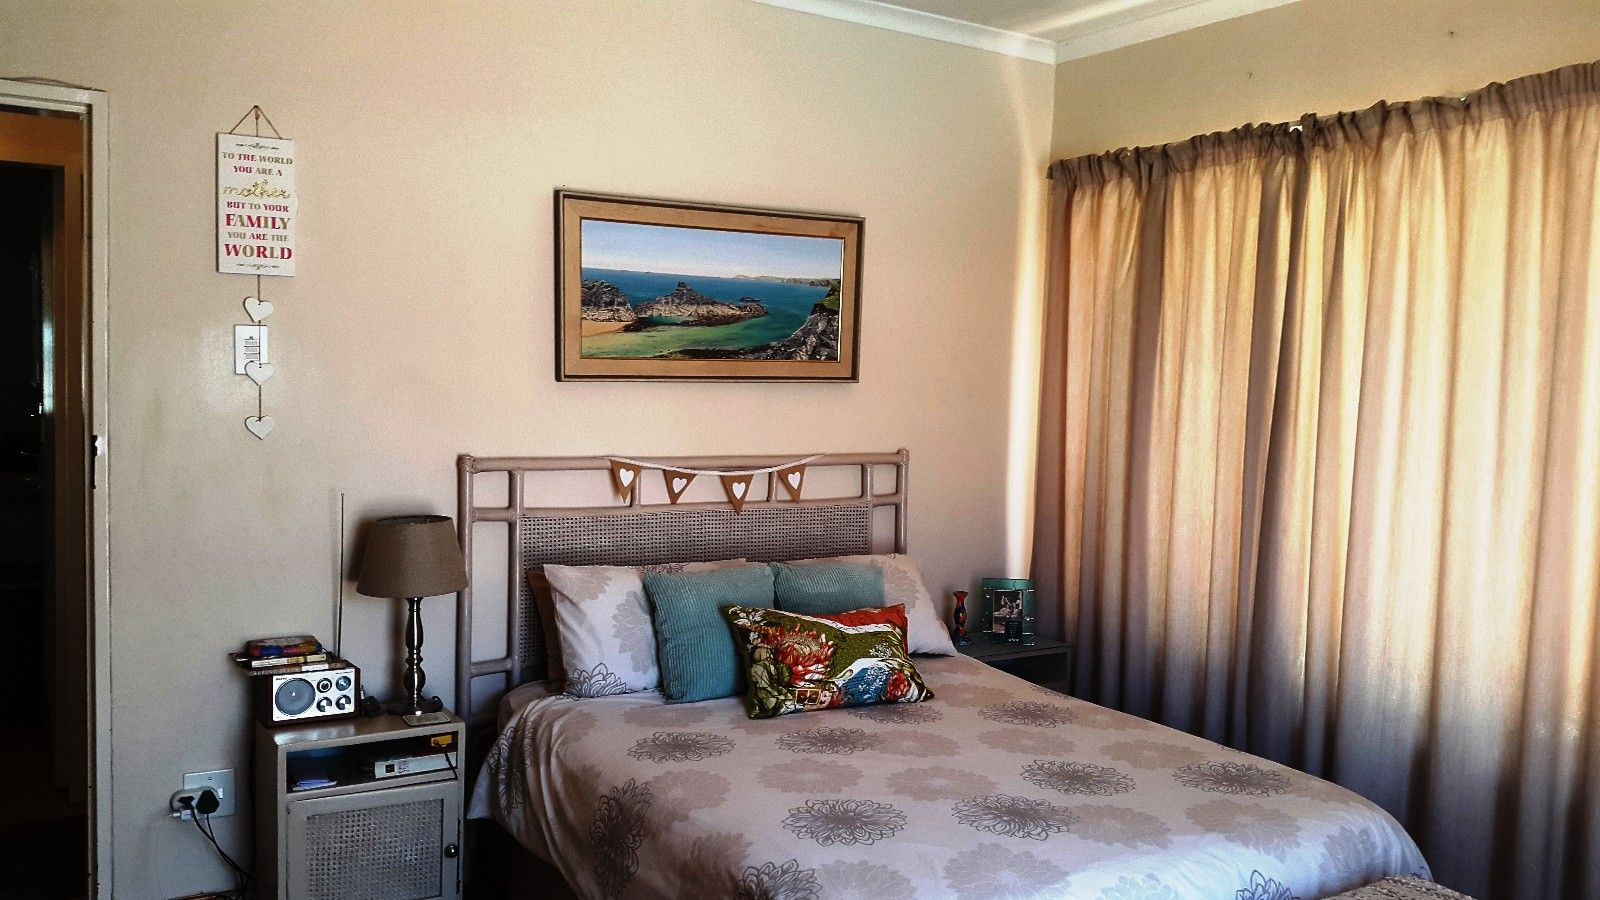 Potchefstroom Central property for sale. Ref No: 13460775. Picture no 21